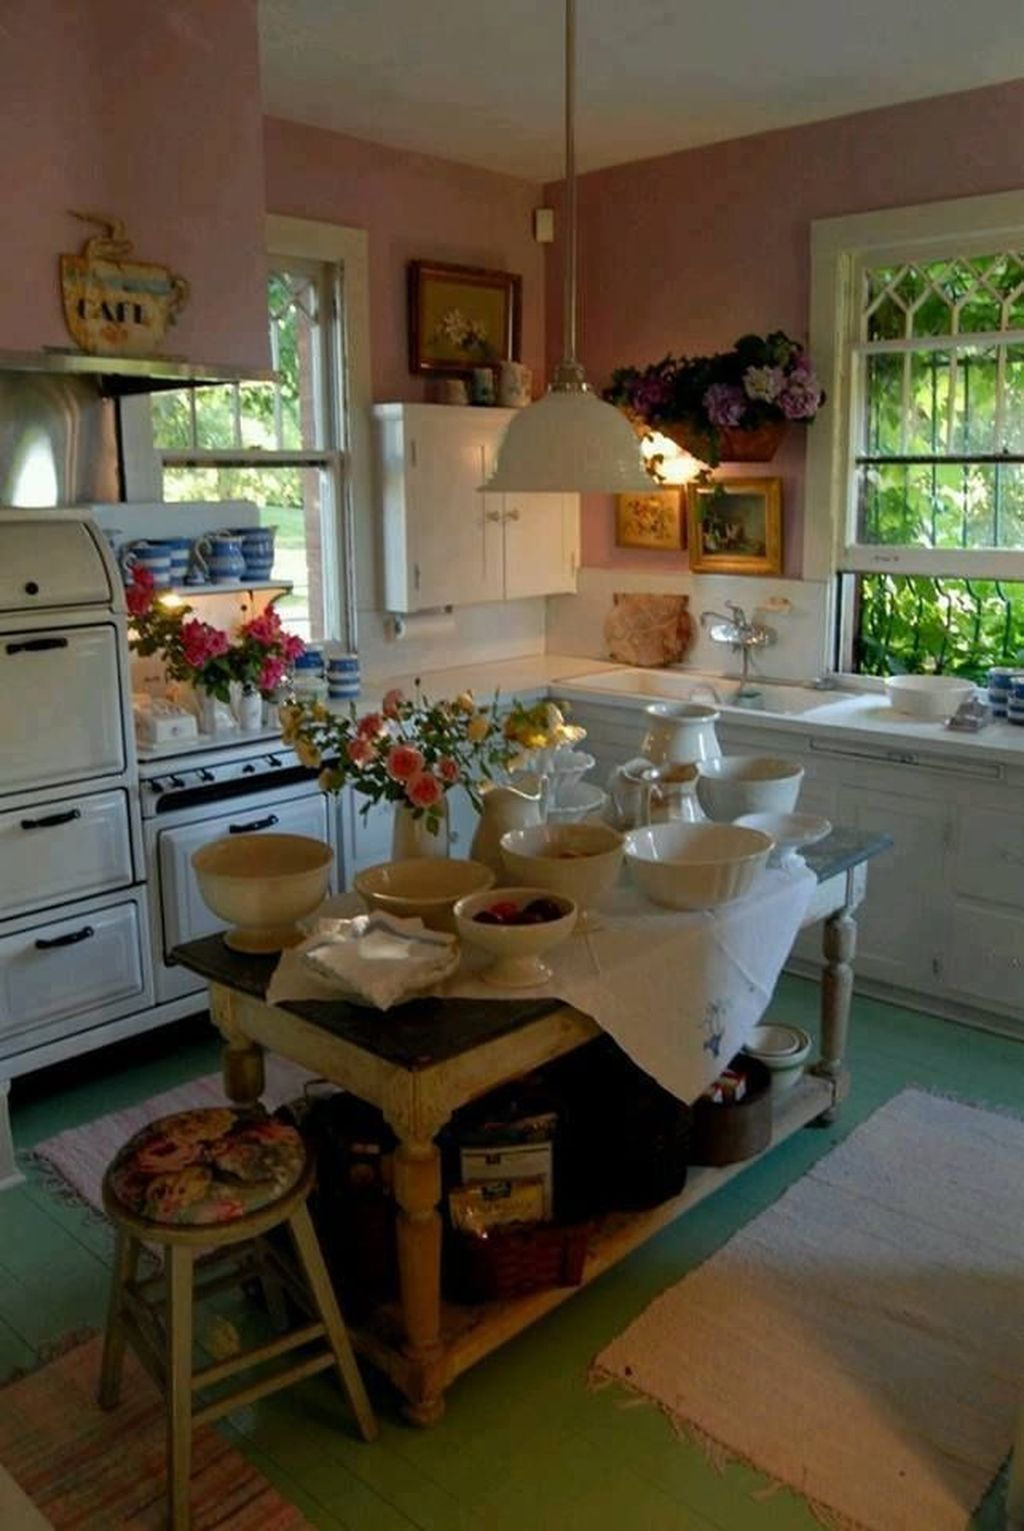 clean and simple rustic kitchen decoration ideas kitchen